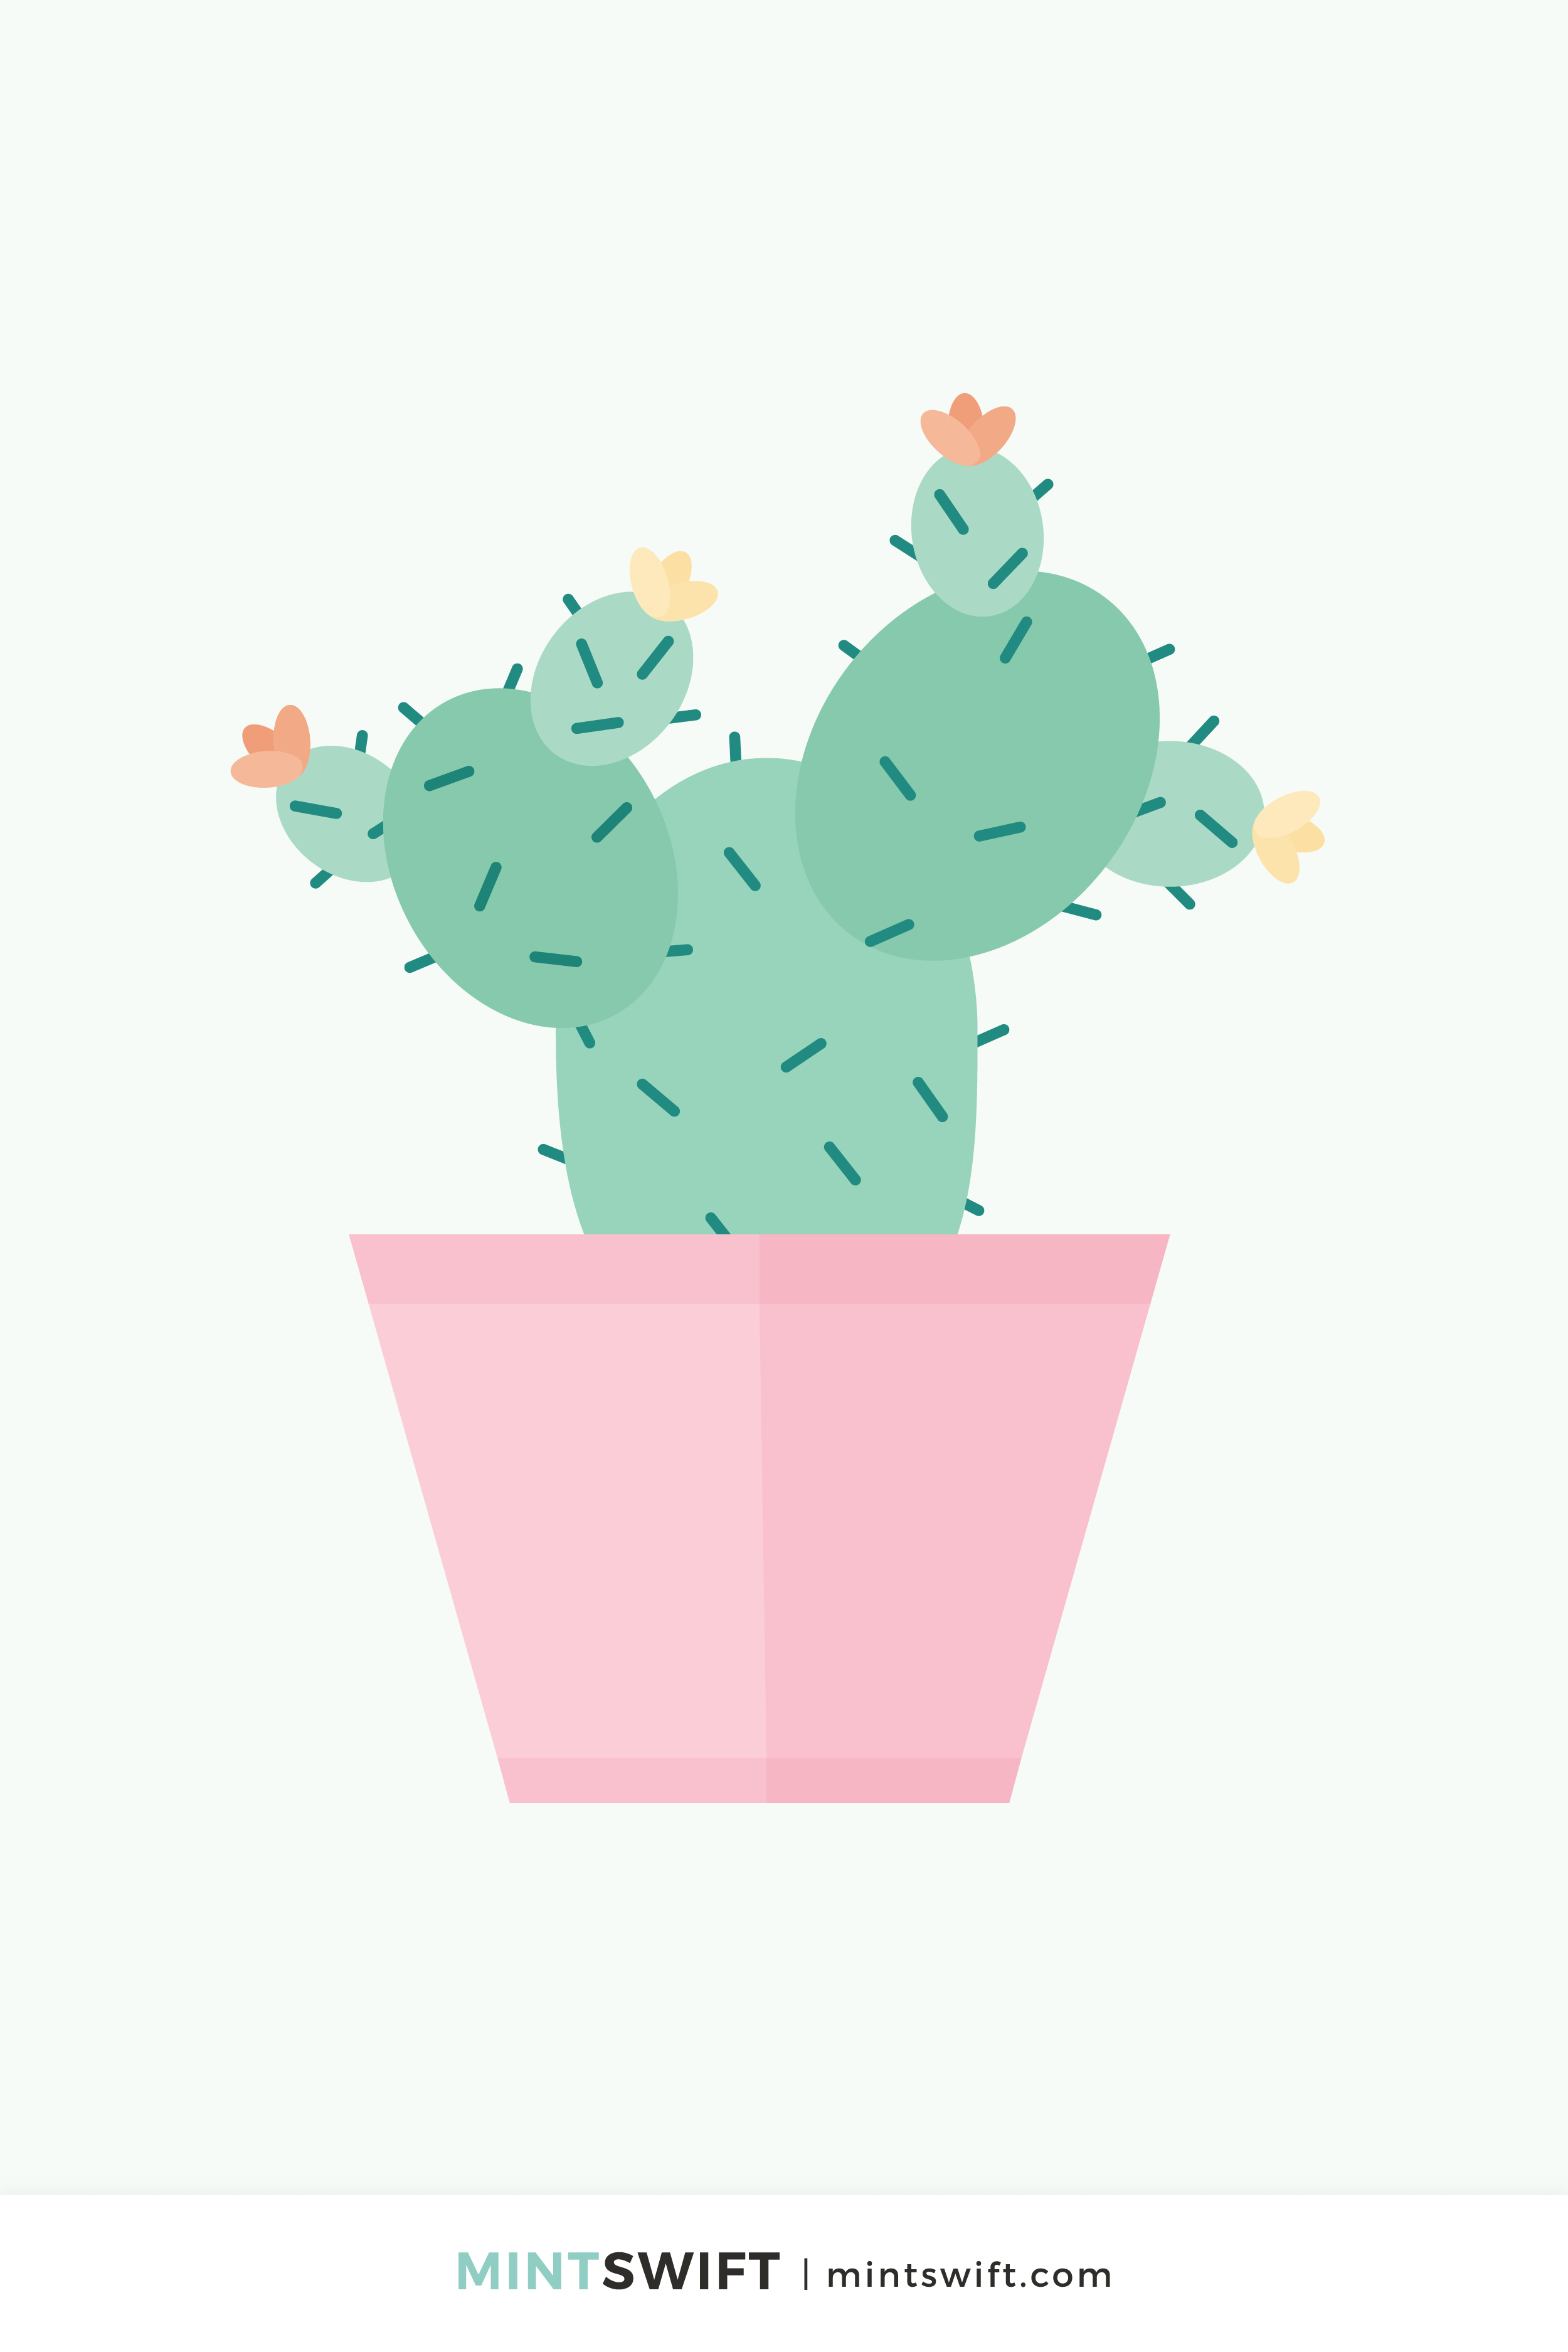 Vector illustration of a cactus in flat design style. Light green cacti, with yellow & orange flowers, inside of a pink pot on a light grey background